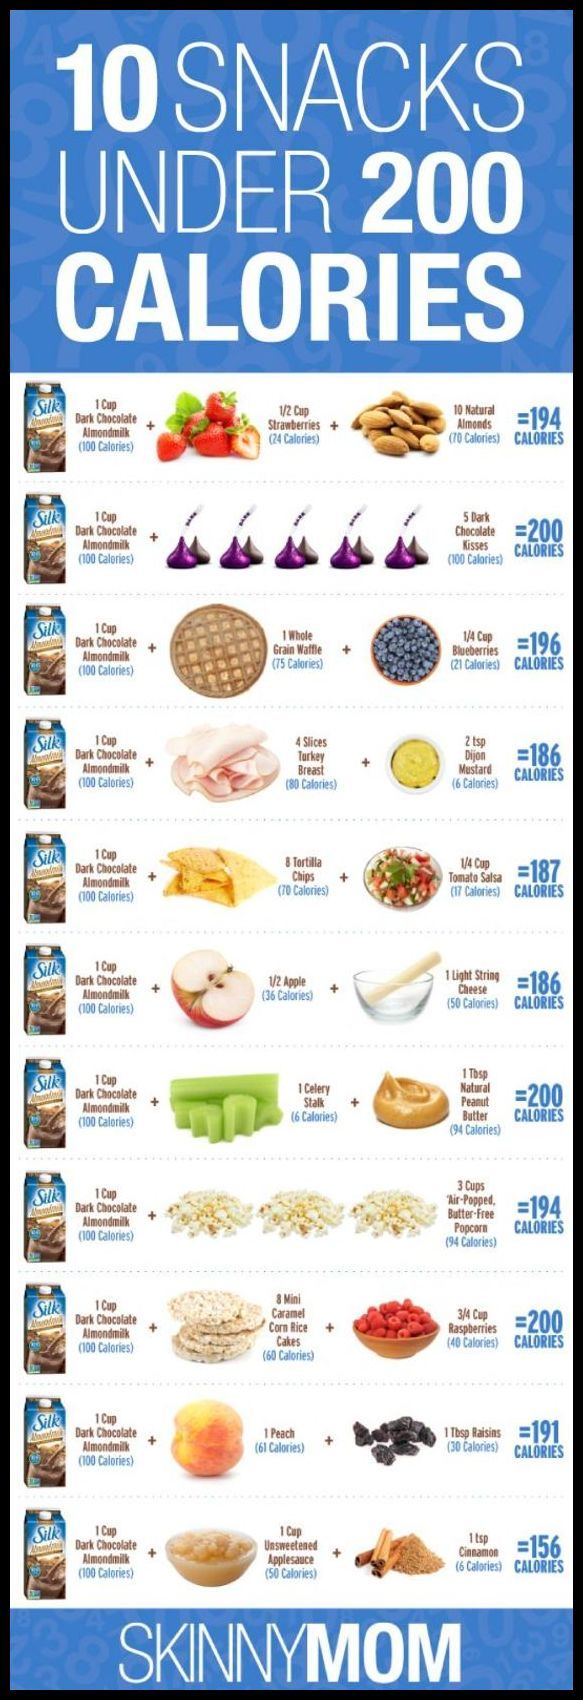 Which Foods Should Type 2 Diabetics Eat And Which Ones Should They Avoid Diabetic Food List More Info No Calorie Snacks 200 Calorie Snacks 200 Calories